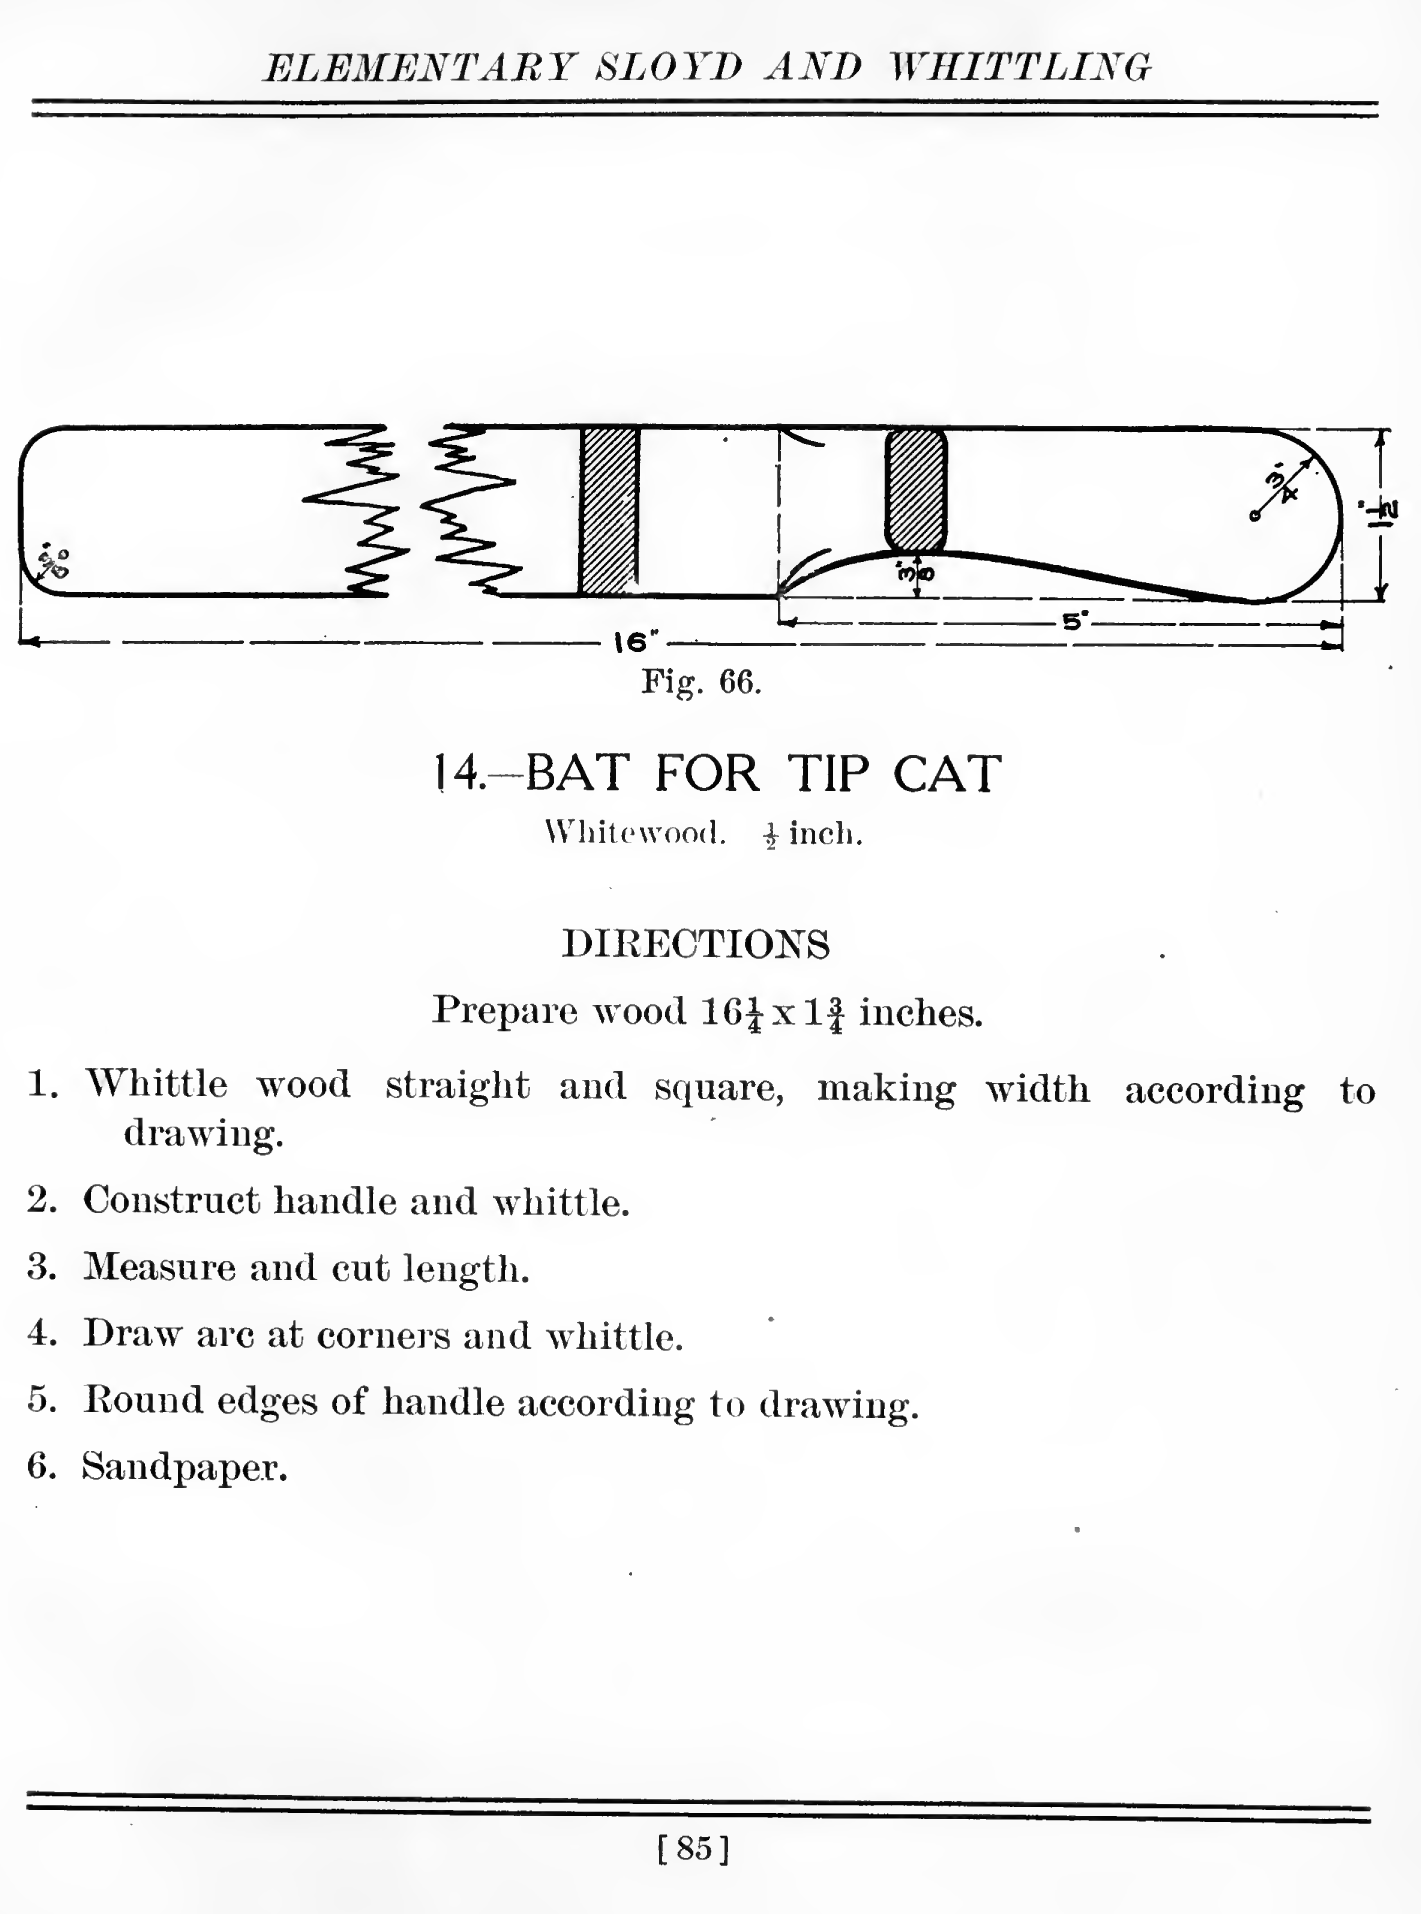 The bat for hitting the tip cat.